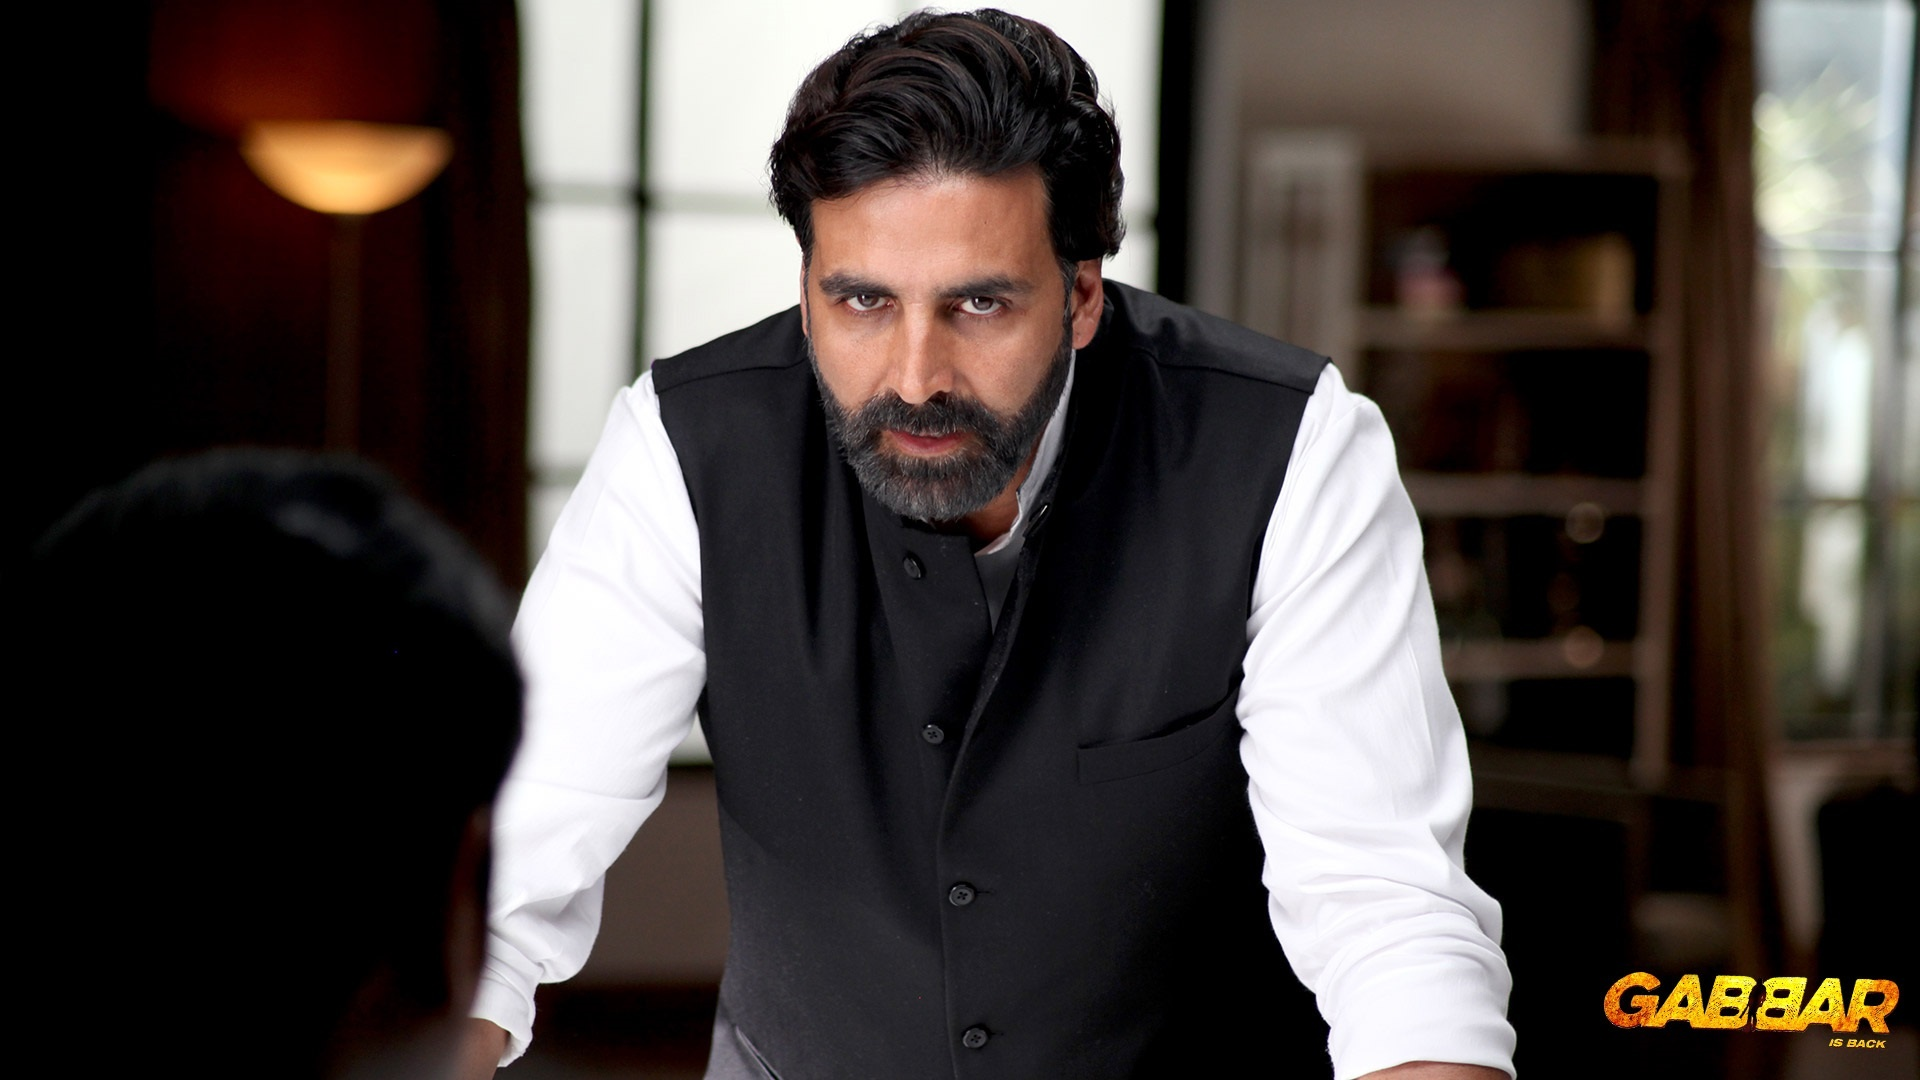 Akshay Kumar As Gabbar Wallpapers 1920x1080 317976